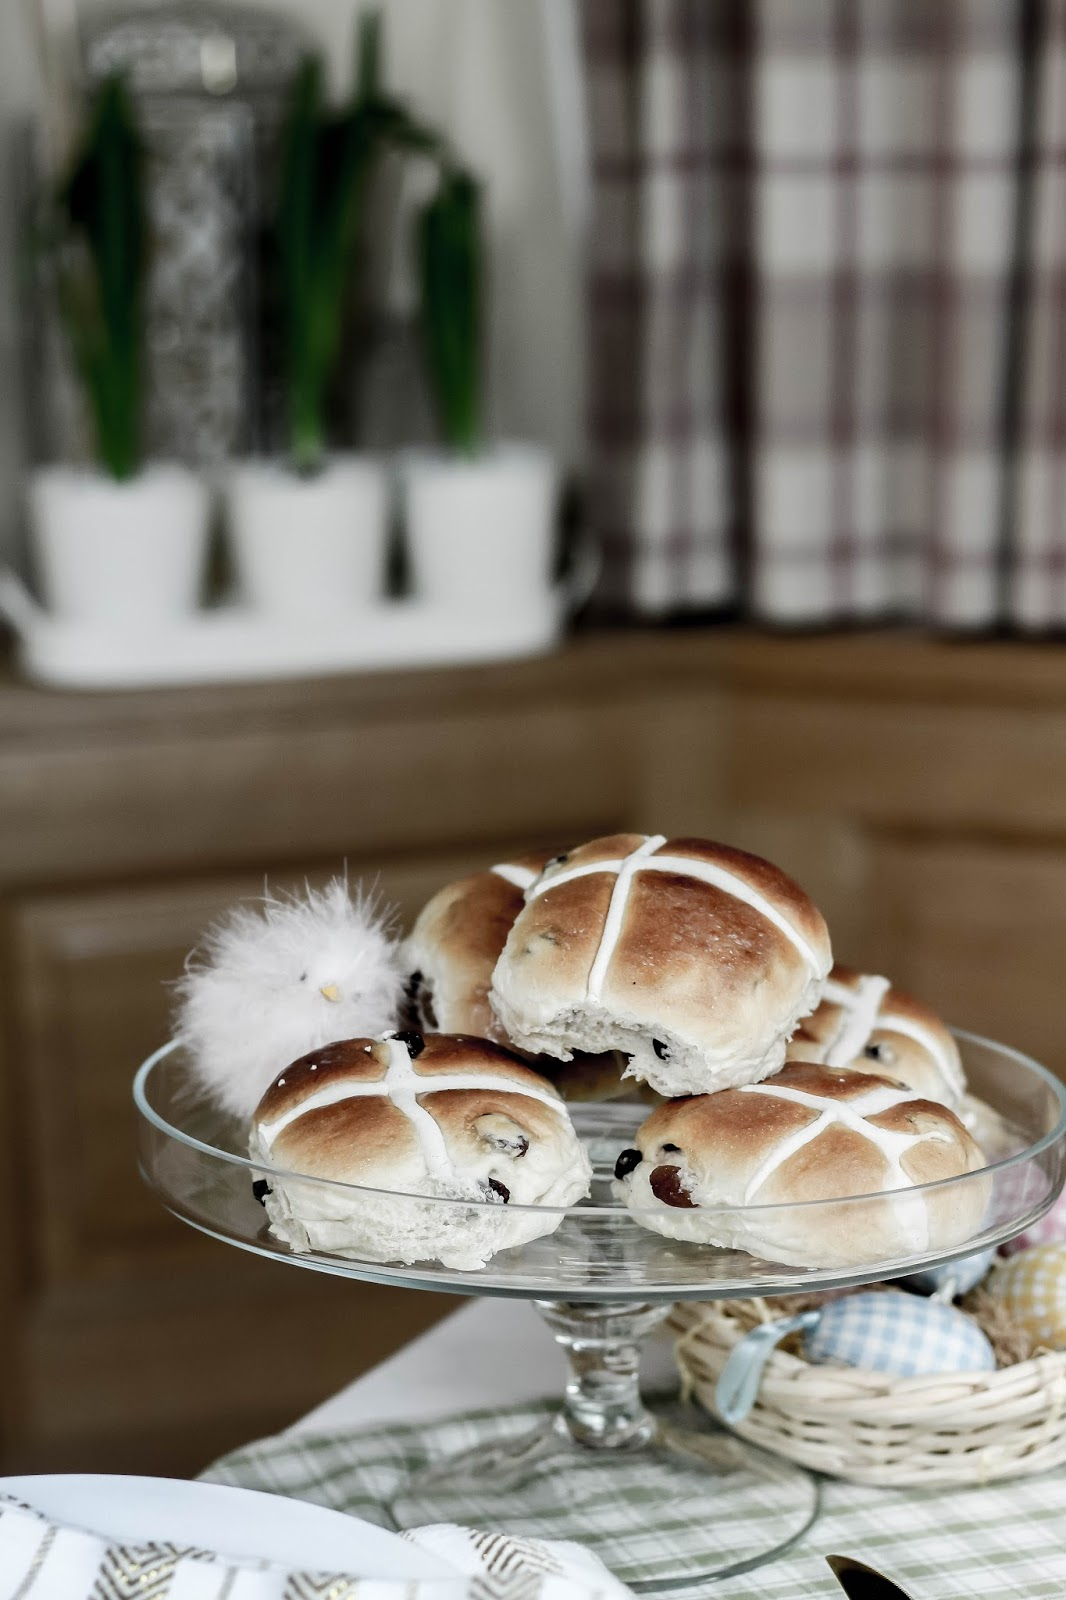 Hot Cross Buns Stacked on Cake Stand